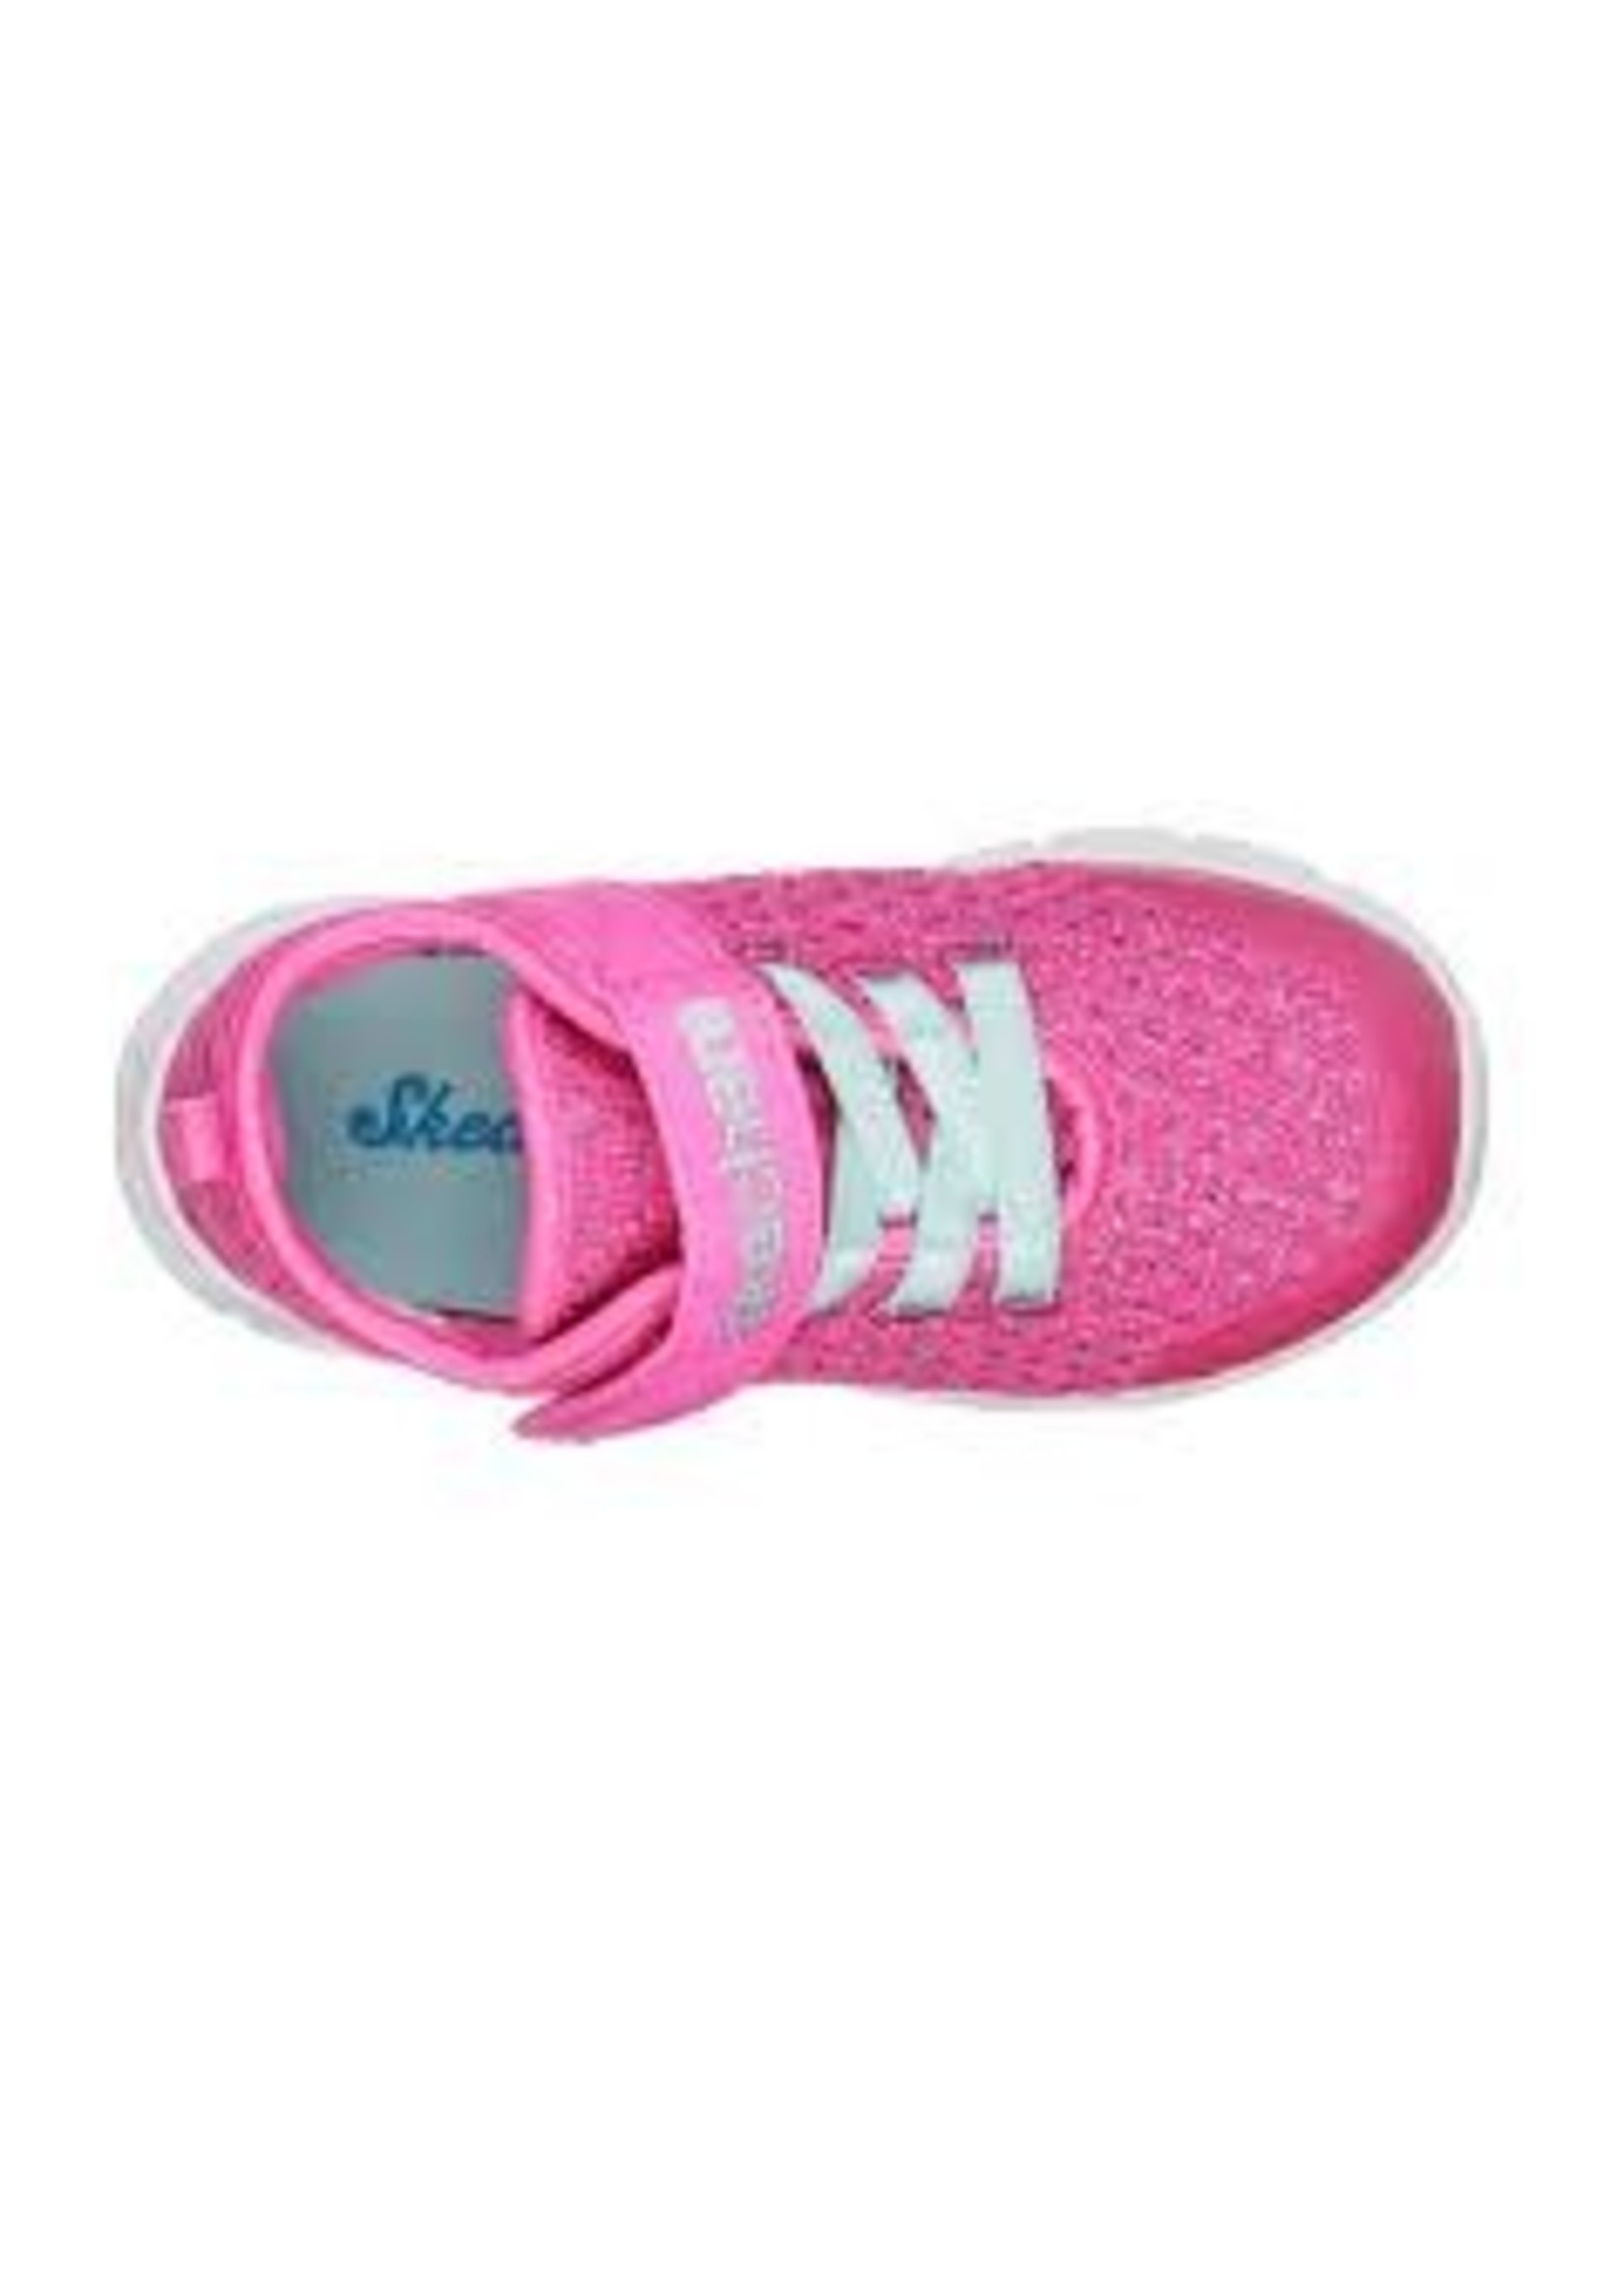 Skechers COMFY FLEX - SPARKLE DASH 82188N